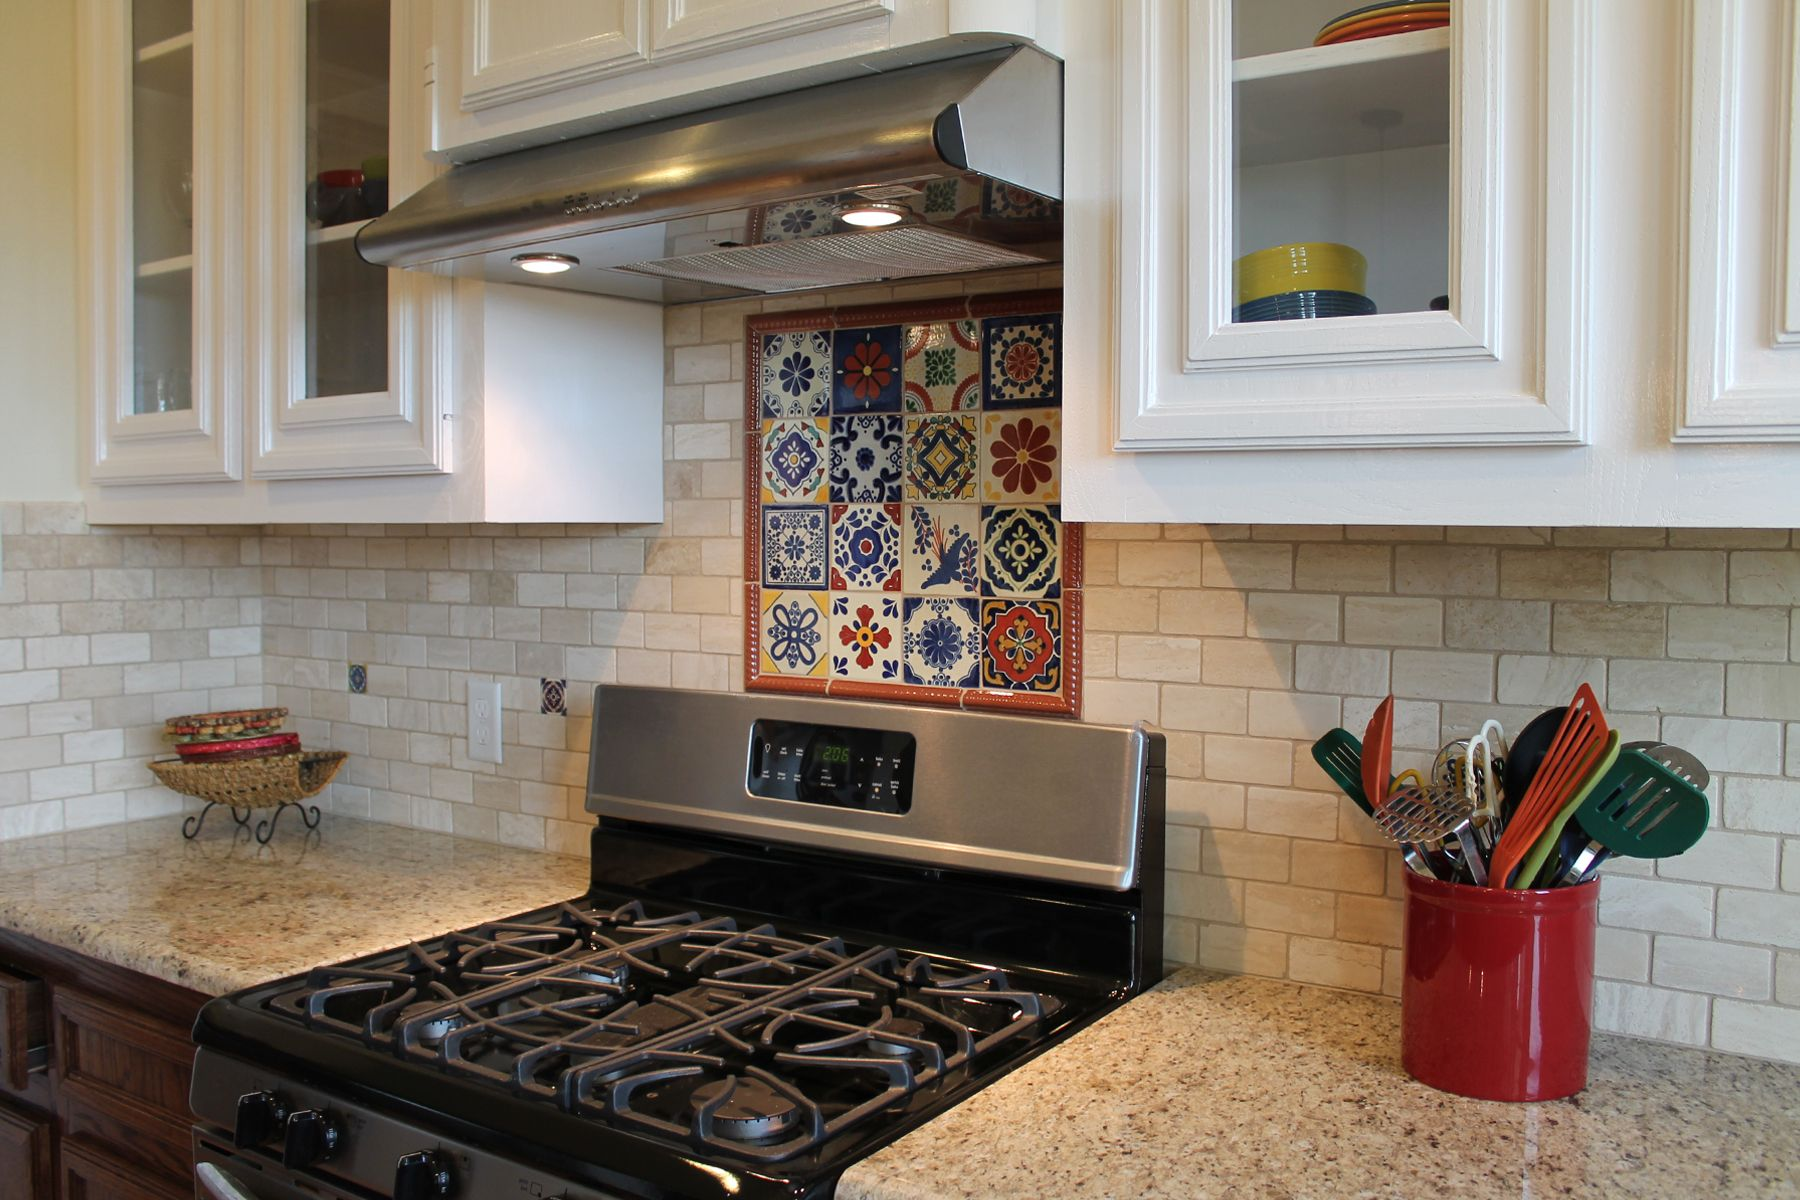 Spanish Tile Countertops Spanish Style Kitchen Backsplash With Talavera Tile And